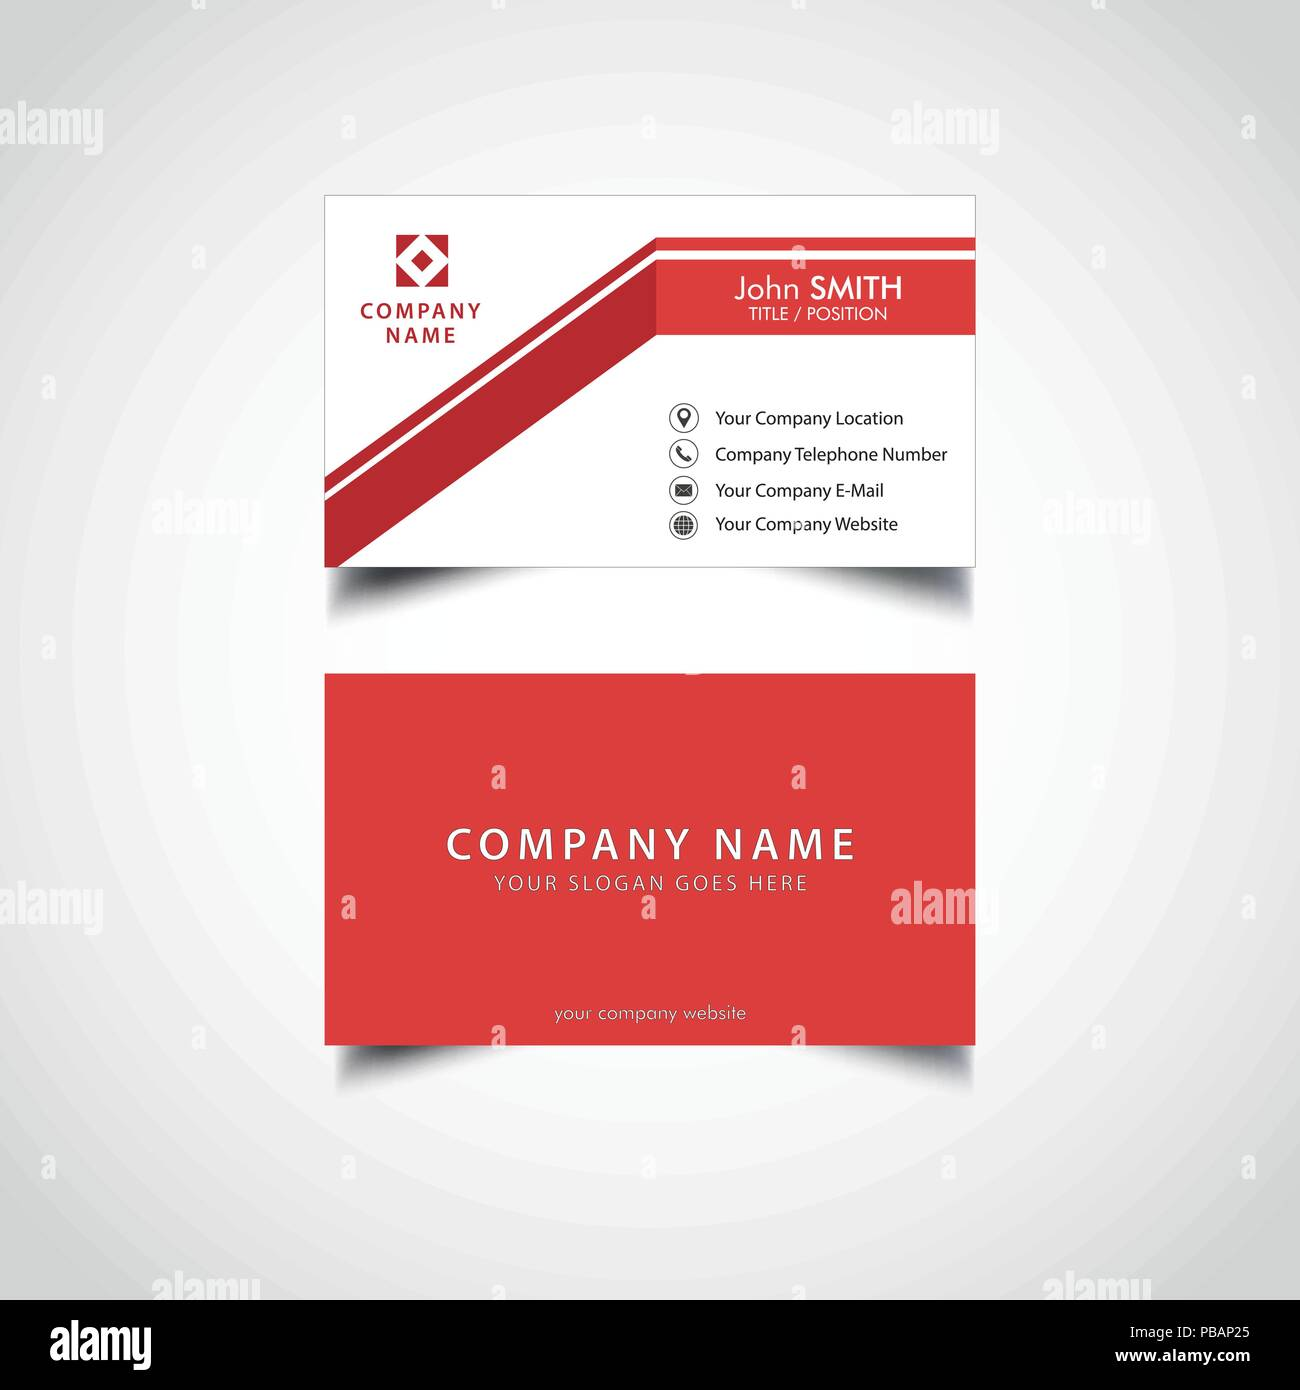 Simple business card template stock vector art illustration simple business card template flashek Gallery